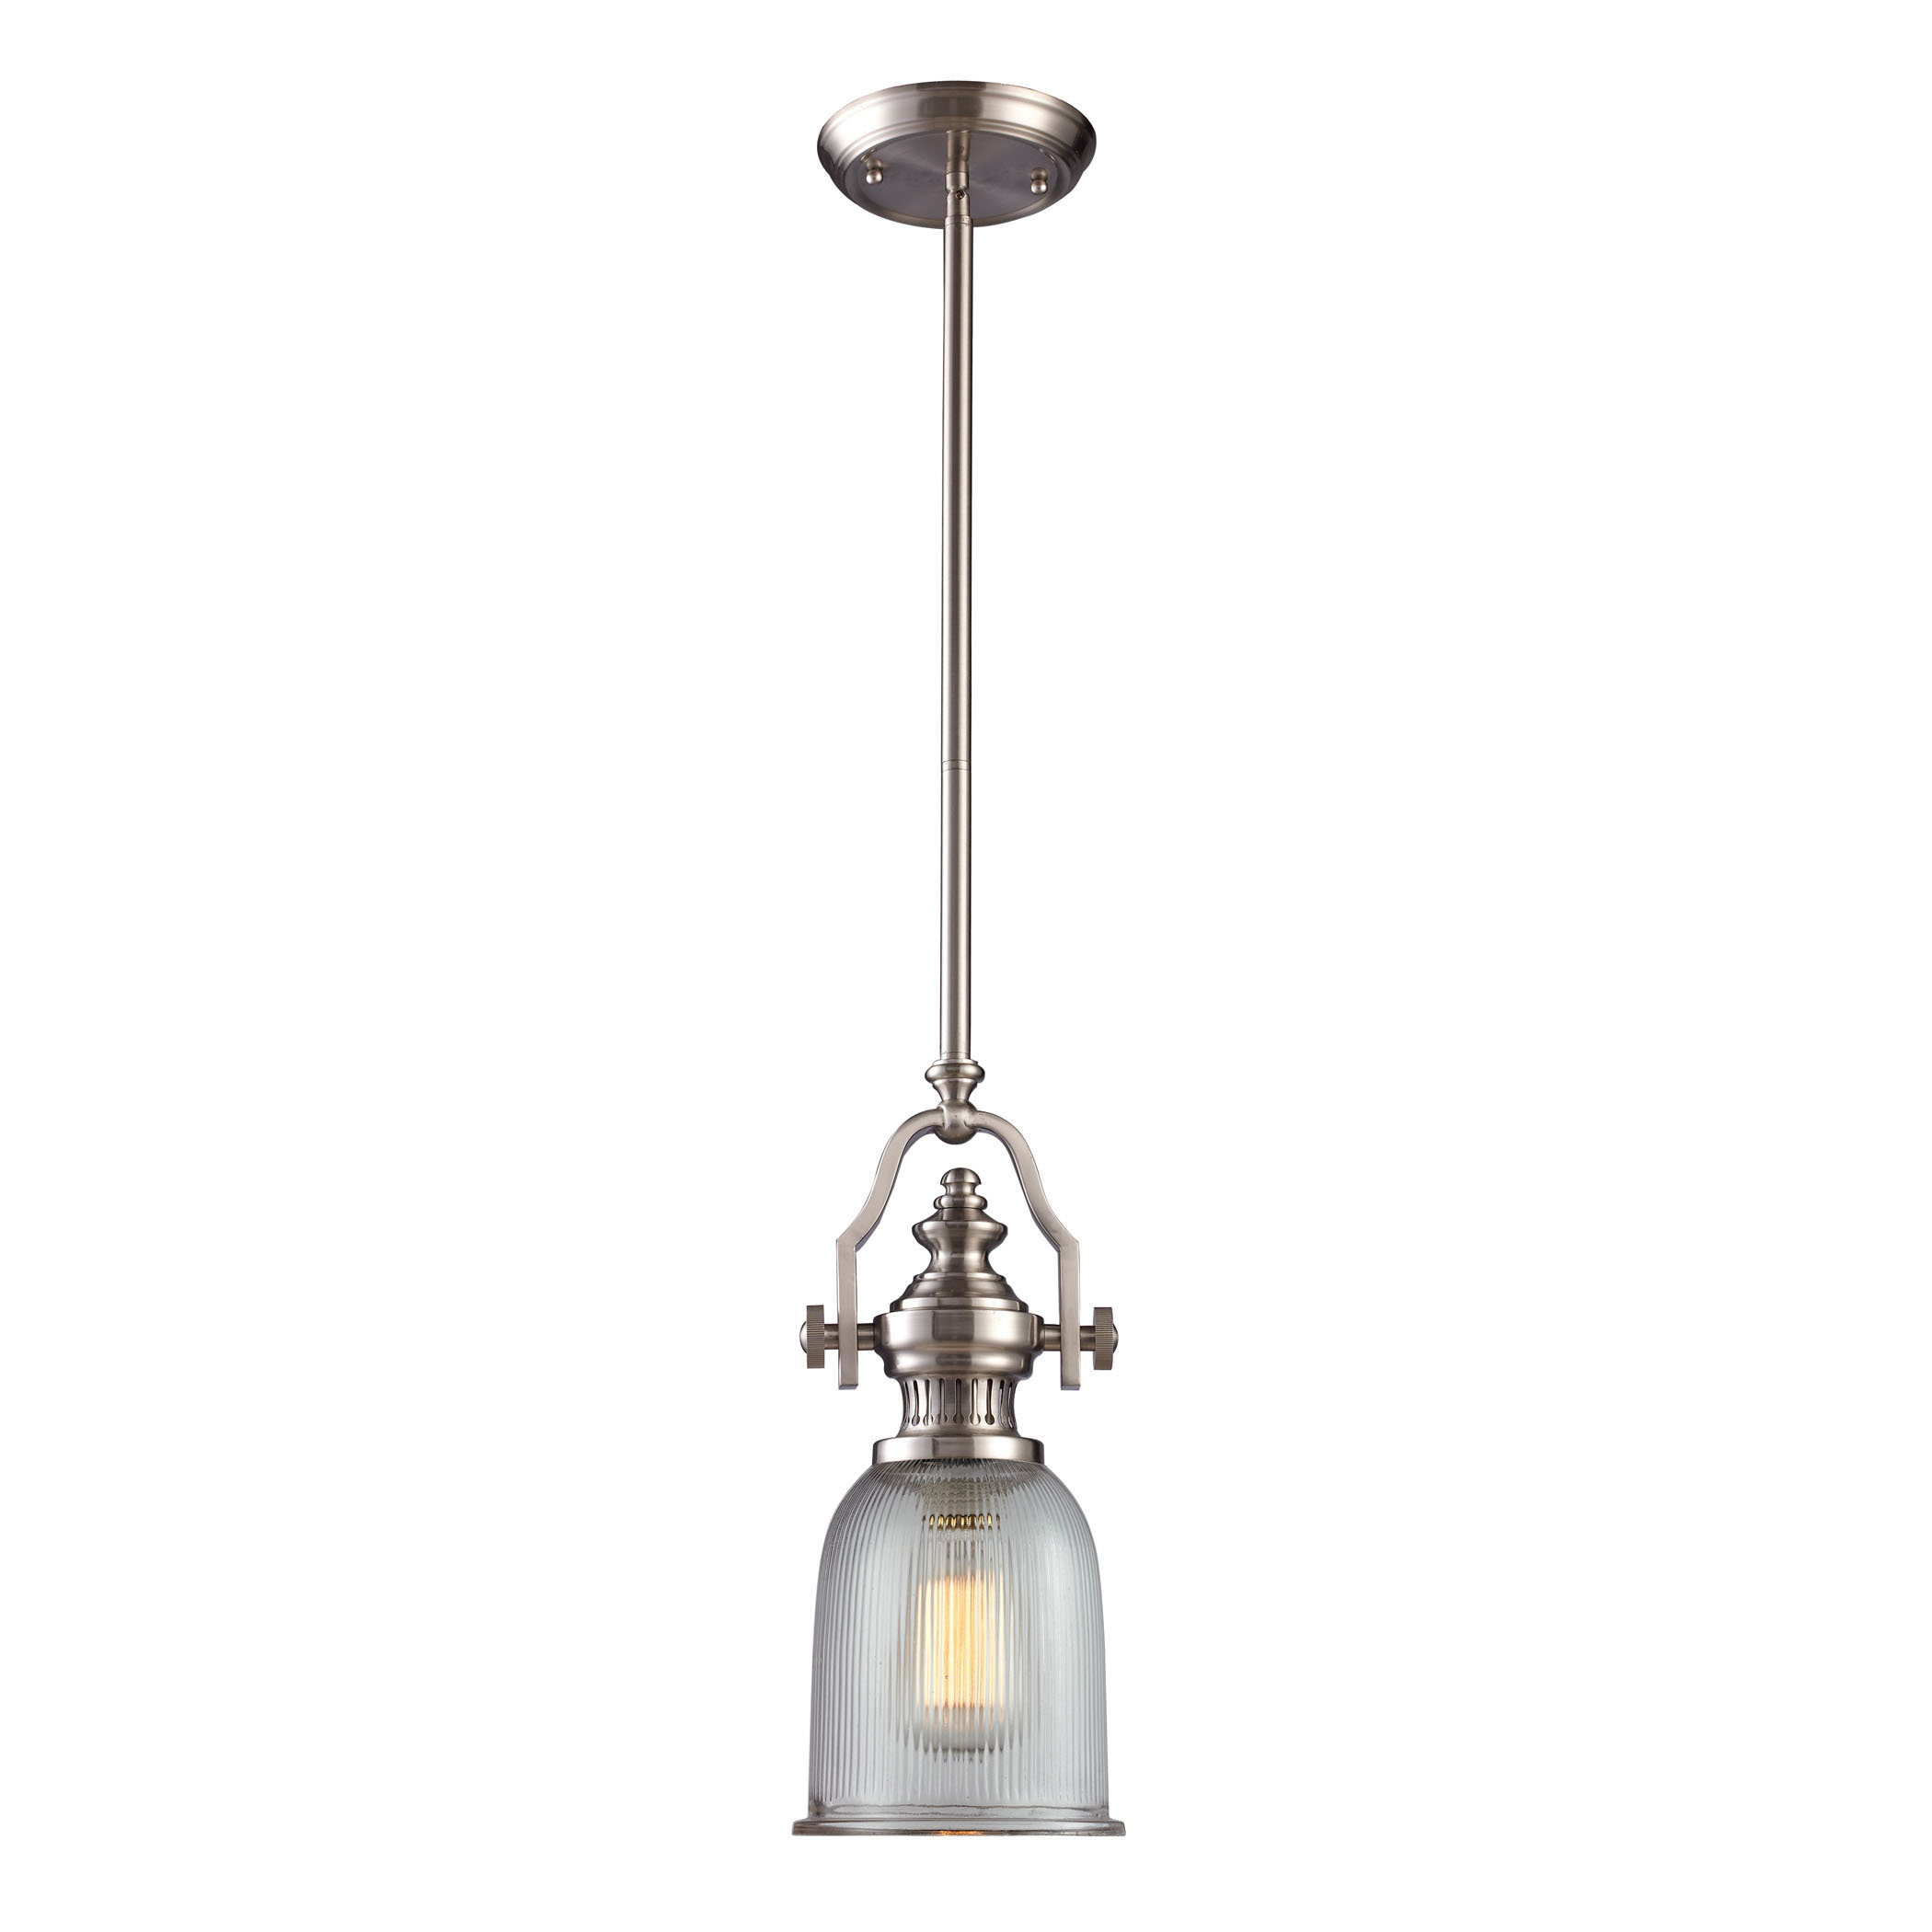 Erico 1 Light Single Bell Pendant Within Bodalla 1 Light Single Bell Pendants (View 21 of 30)